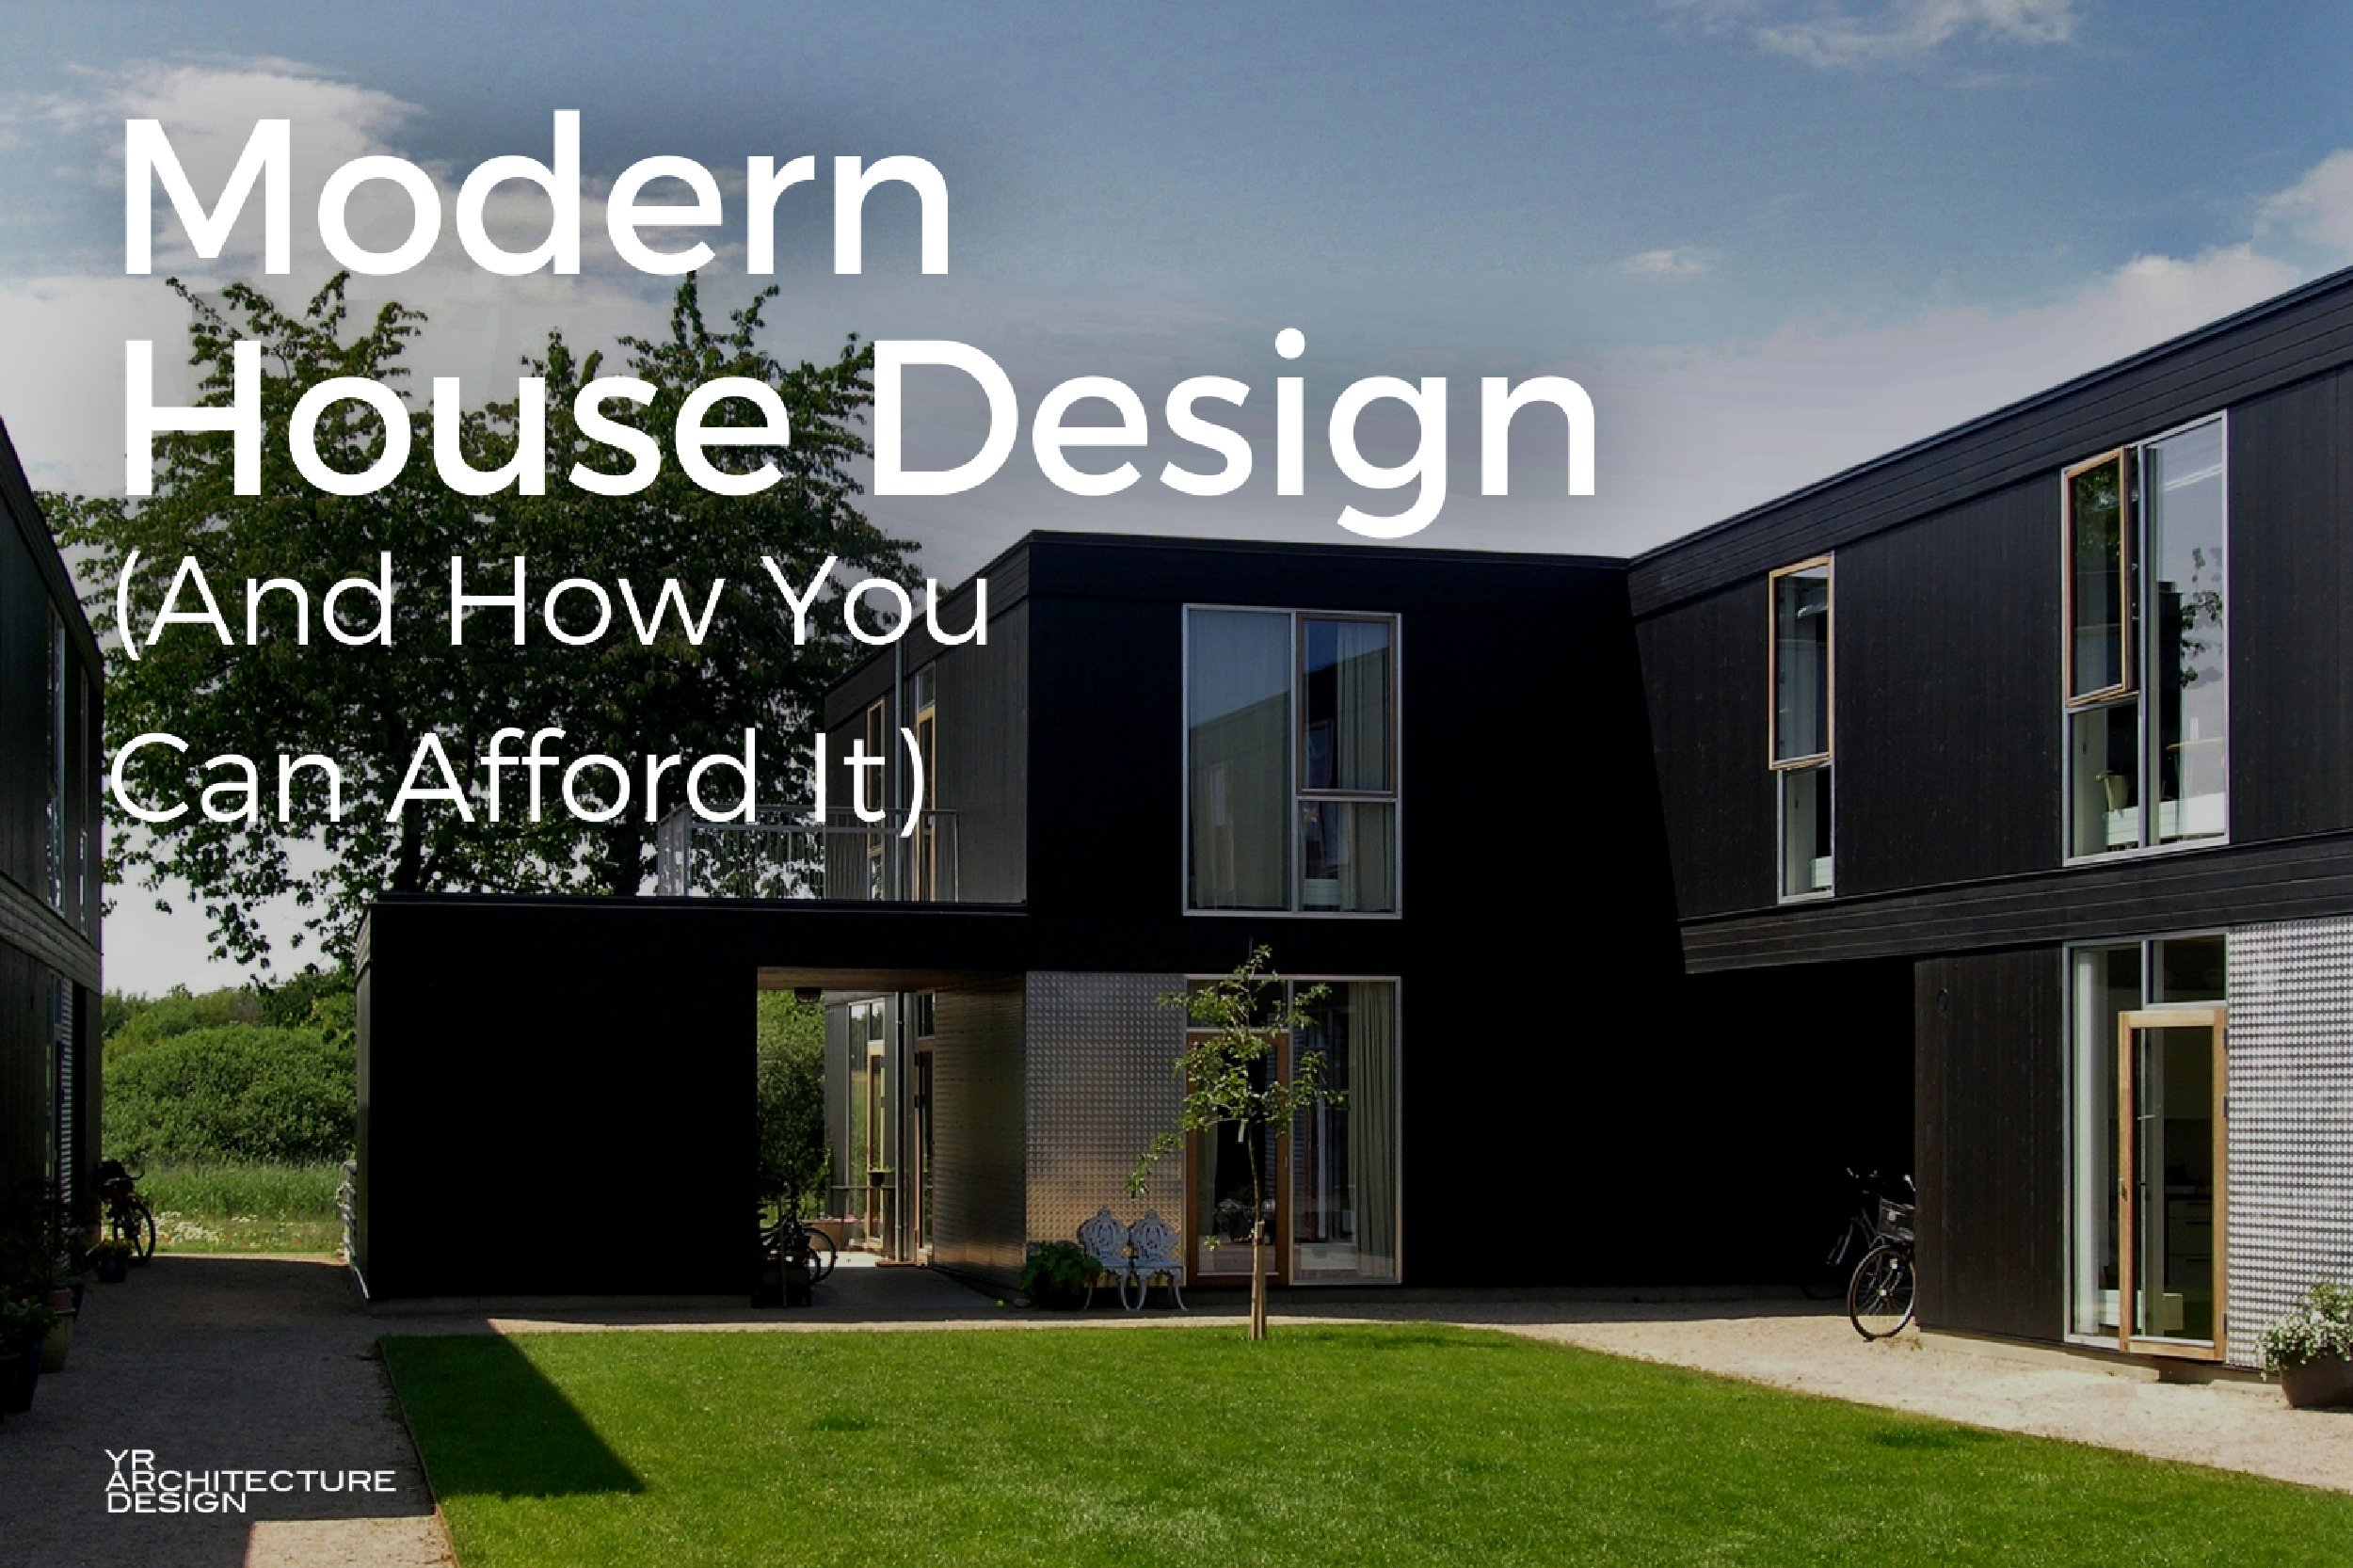 modern house design how you can afford it - Modernist House Design